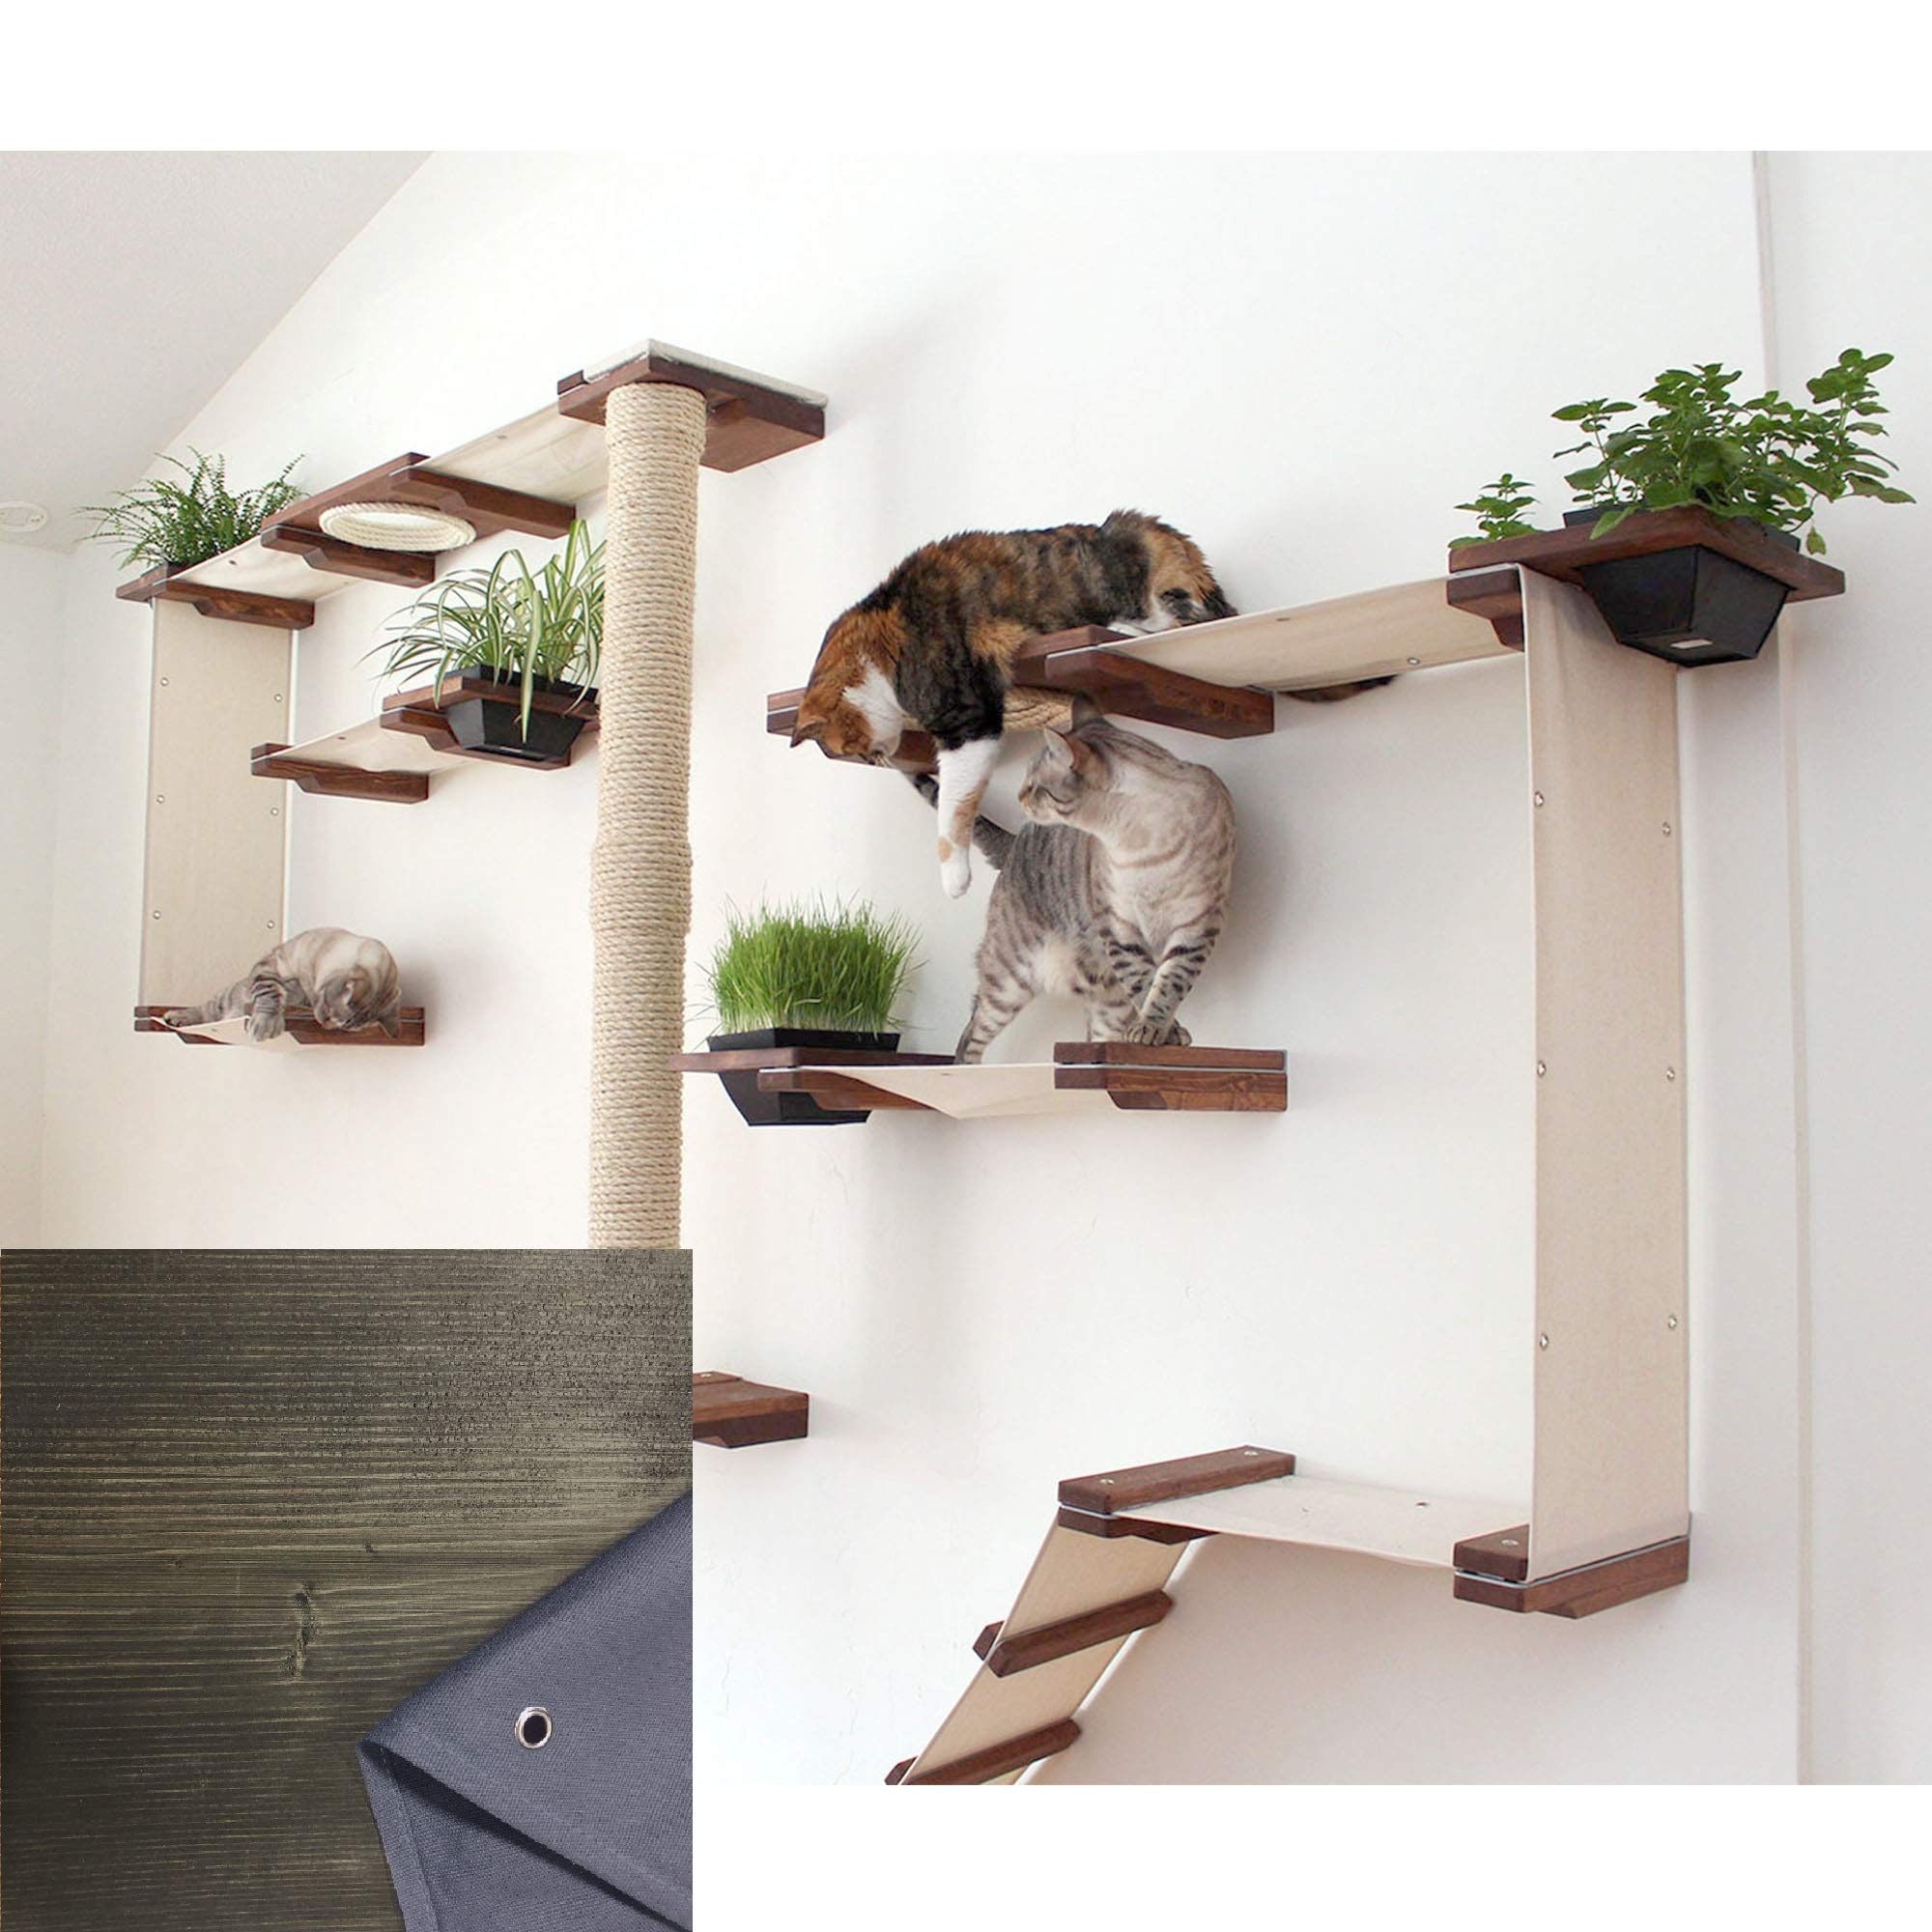 CatastrophiCreations Cat Mod Gardens Set - Multiple-Level Cat Hammock & Climbing Activity Center - Handcrafted Wall-Mounted Cat Tree Shelves with Planter for Cat Grass by CatastrophiCreations